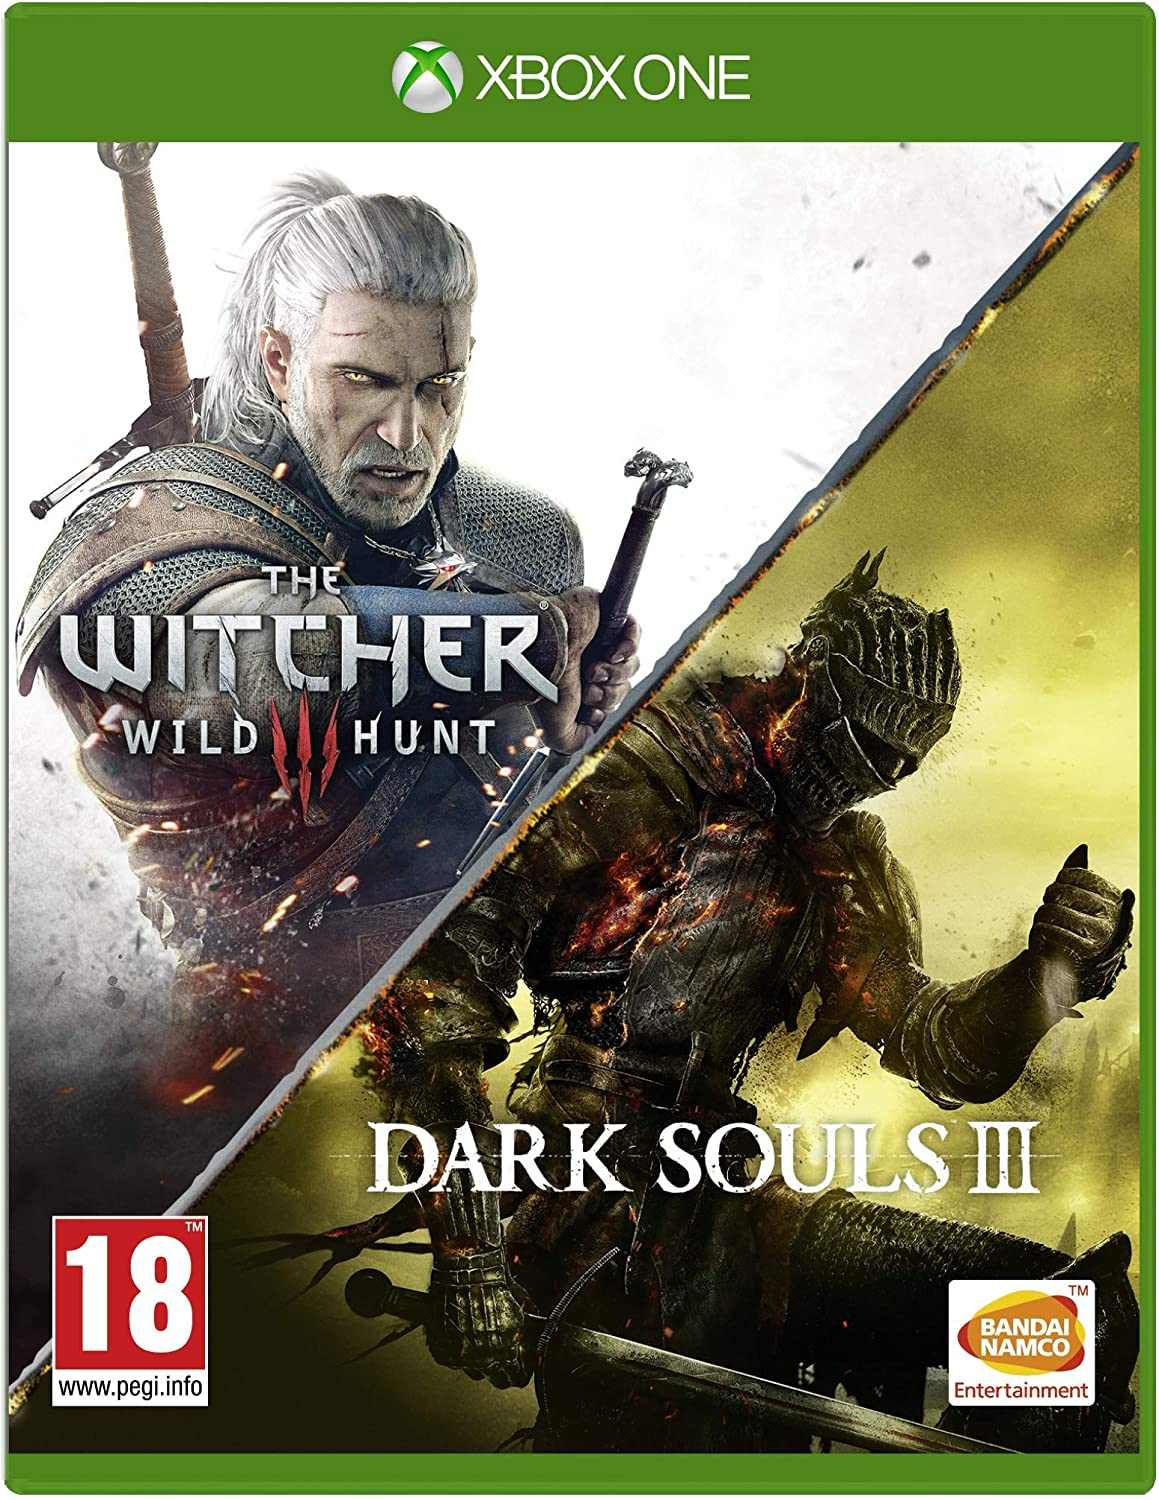 Dark Souls III & The Witcher 3 Wild Hunt Compilation - Xbox One ...